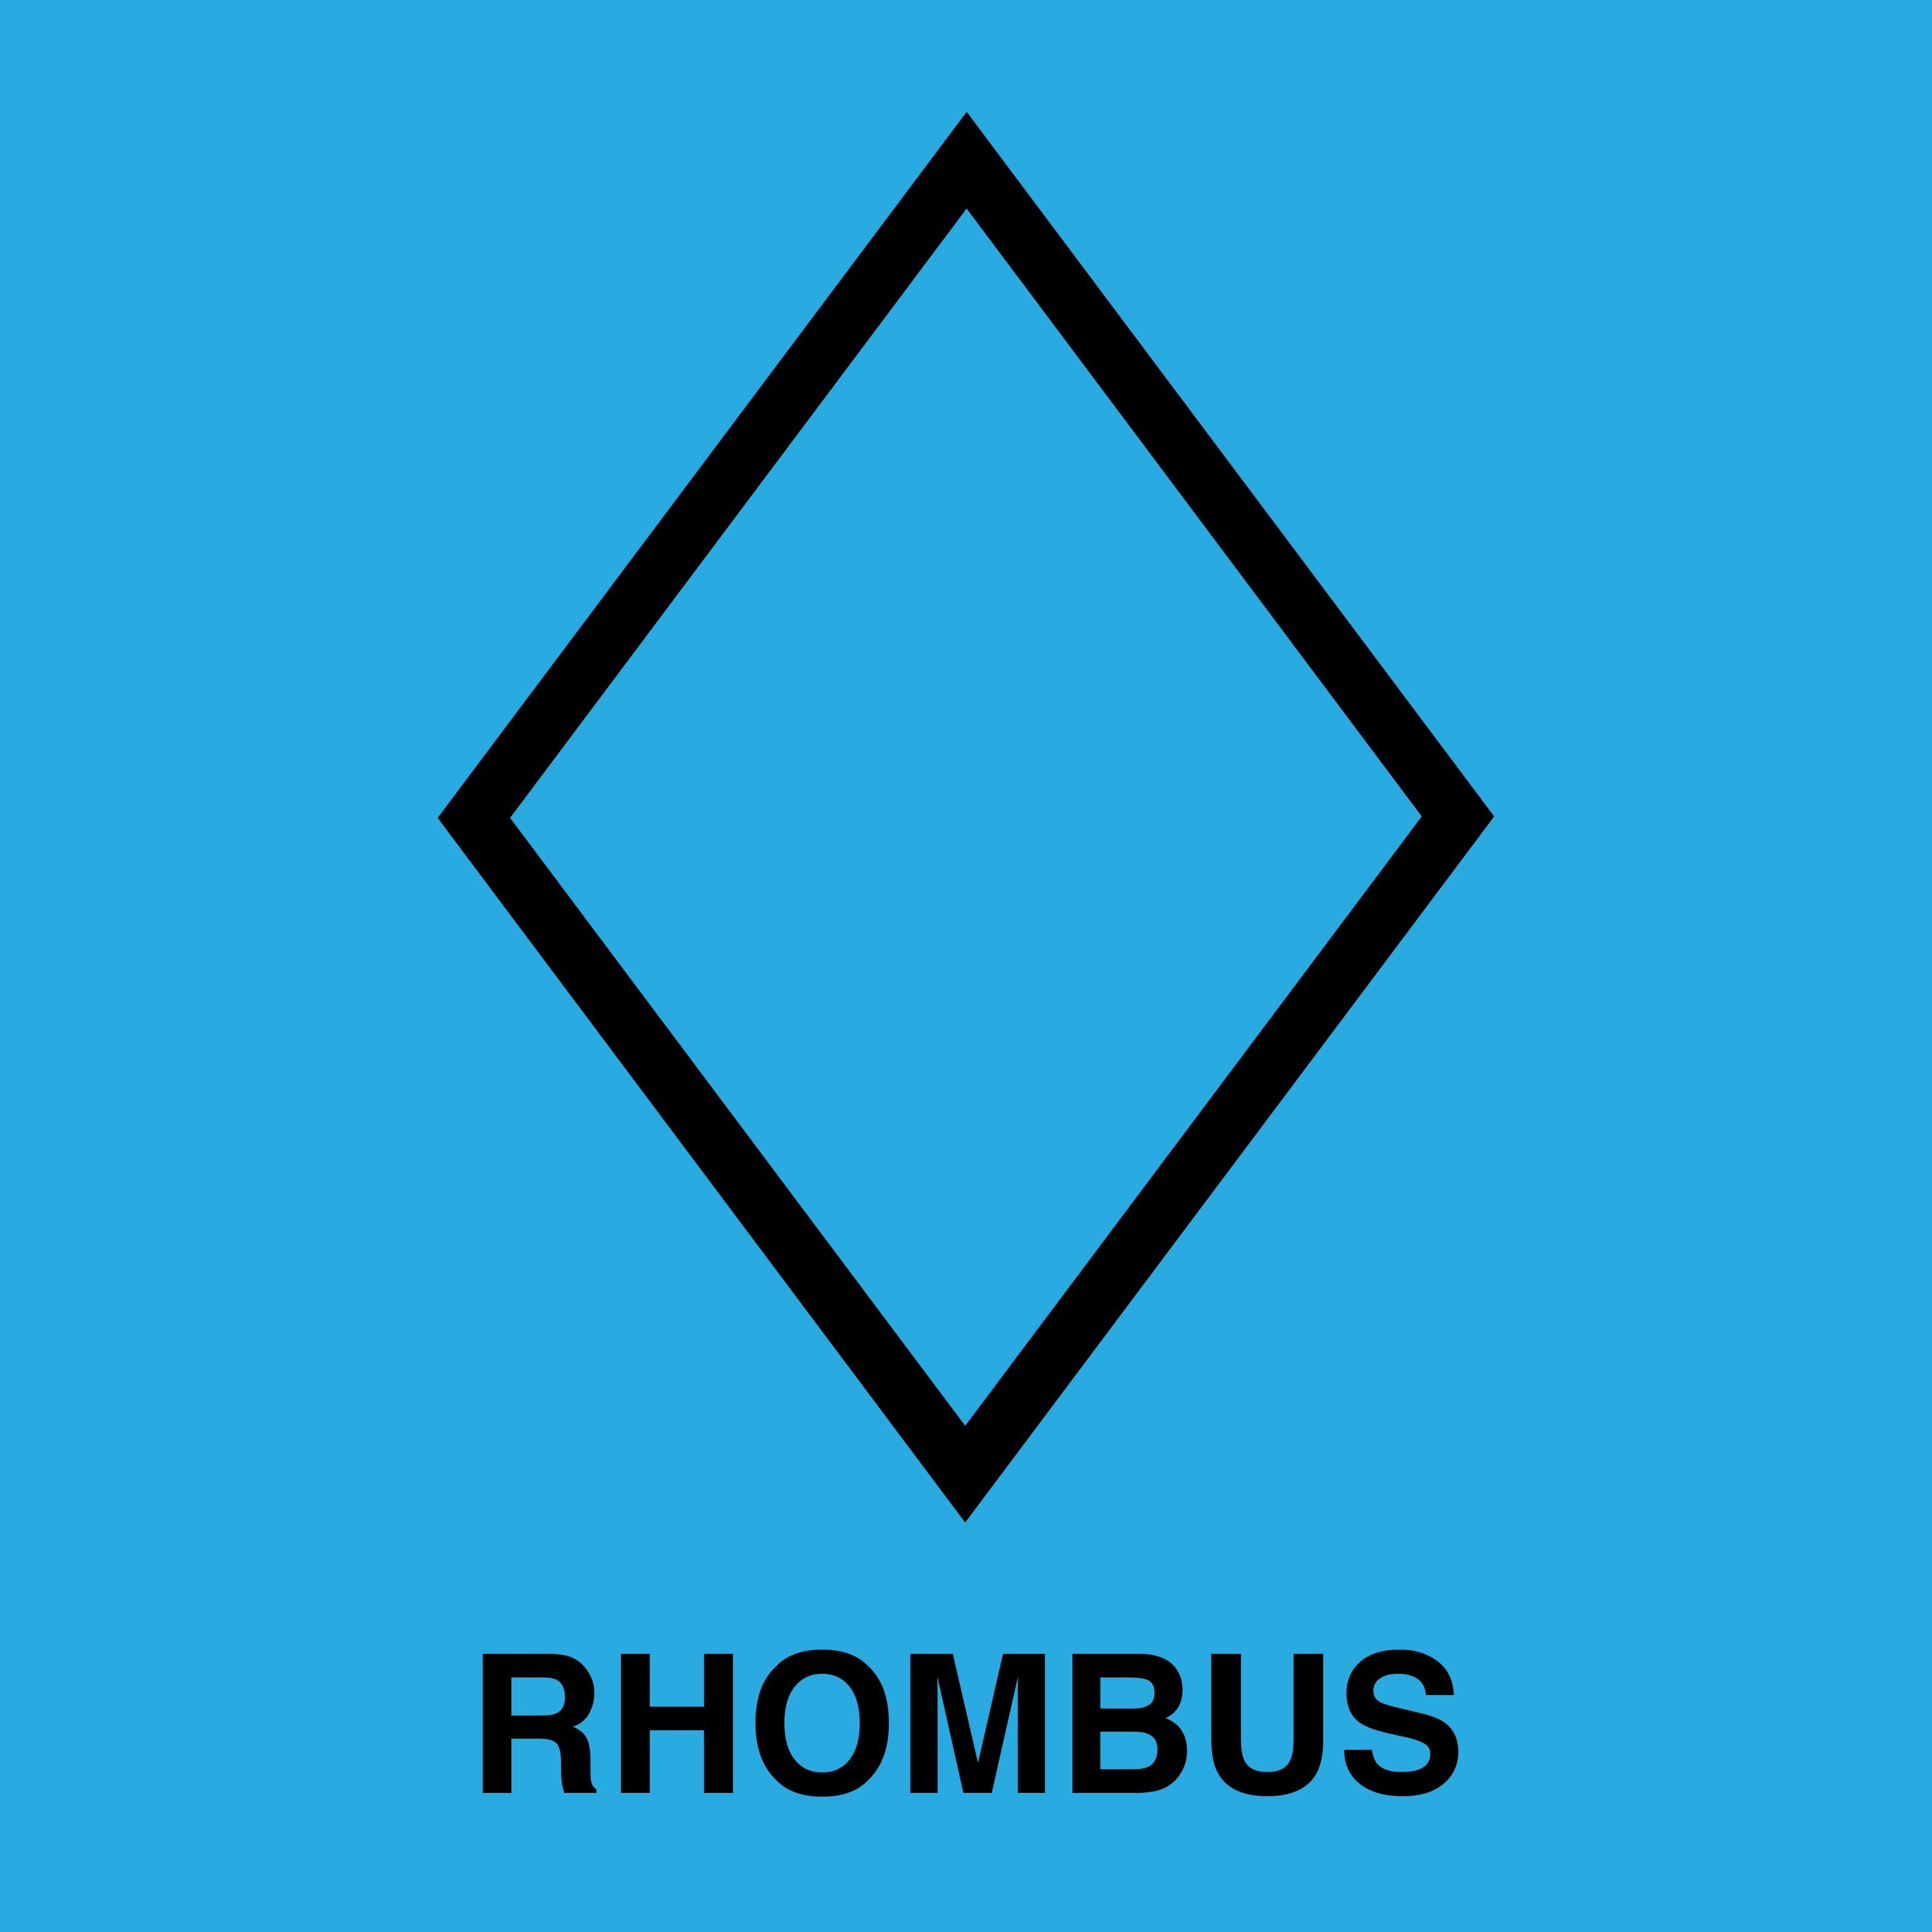 Quadrilateral Definitions For Kids Topic 7 (Rhombus...